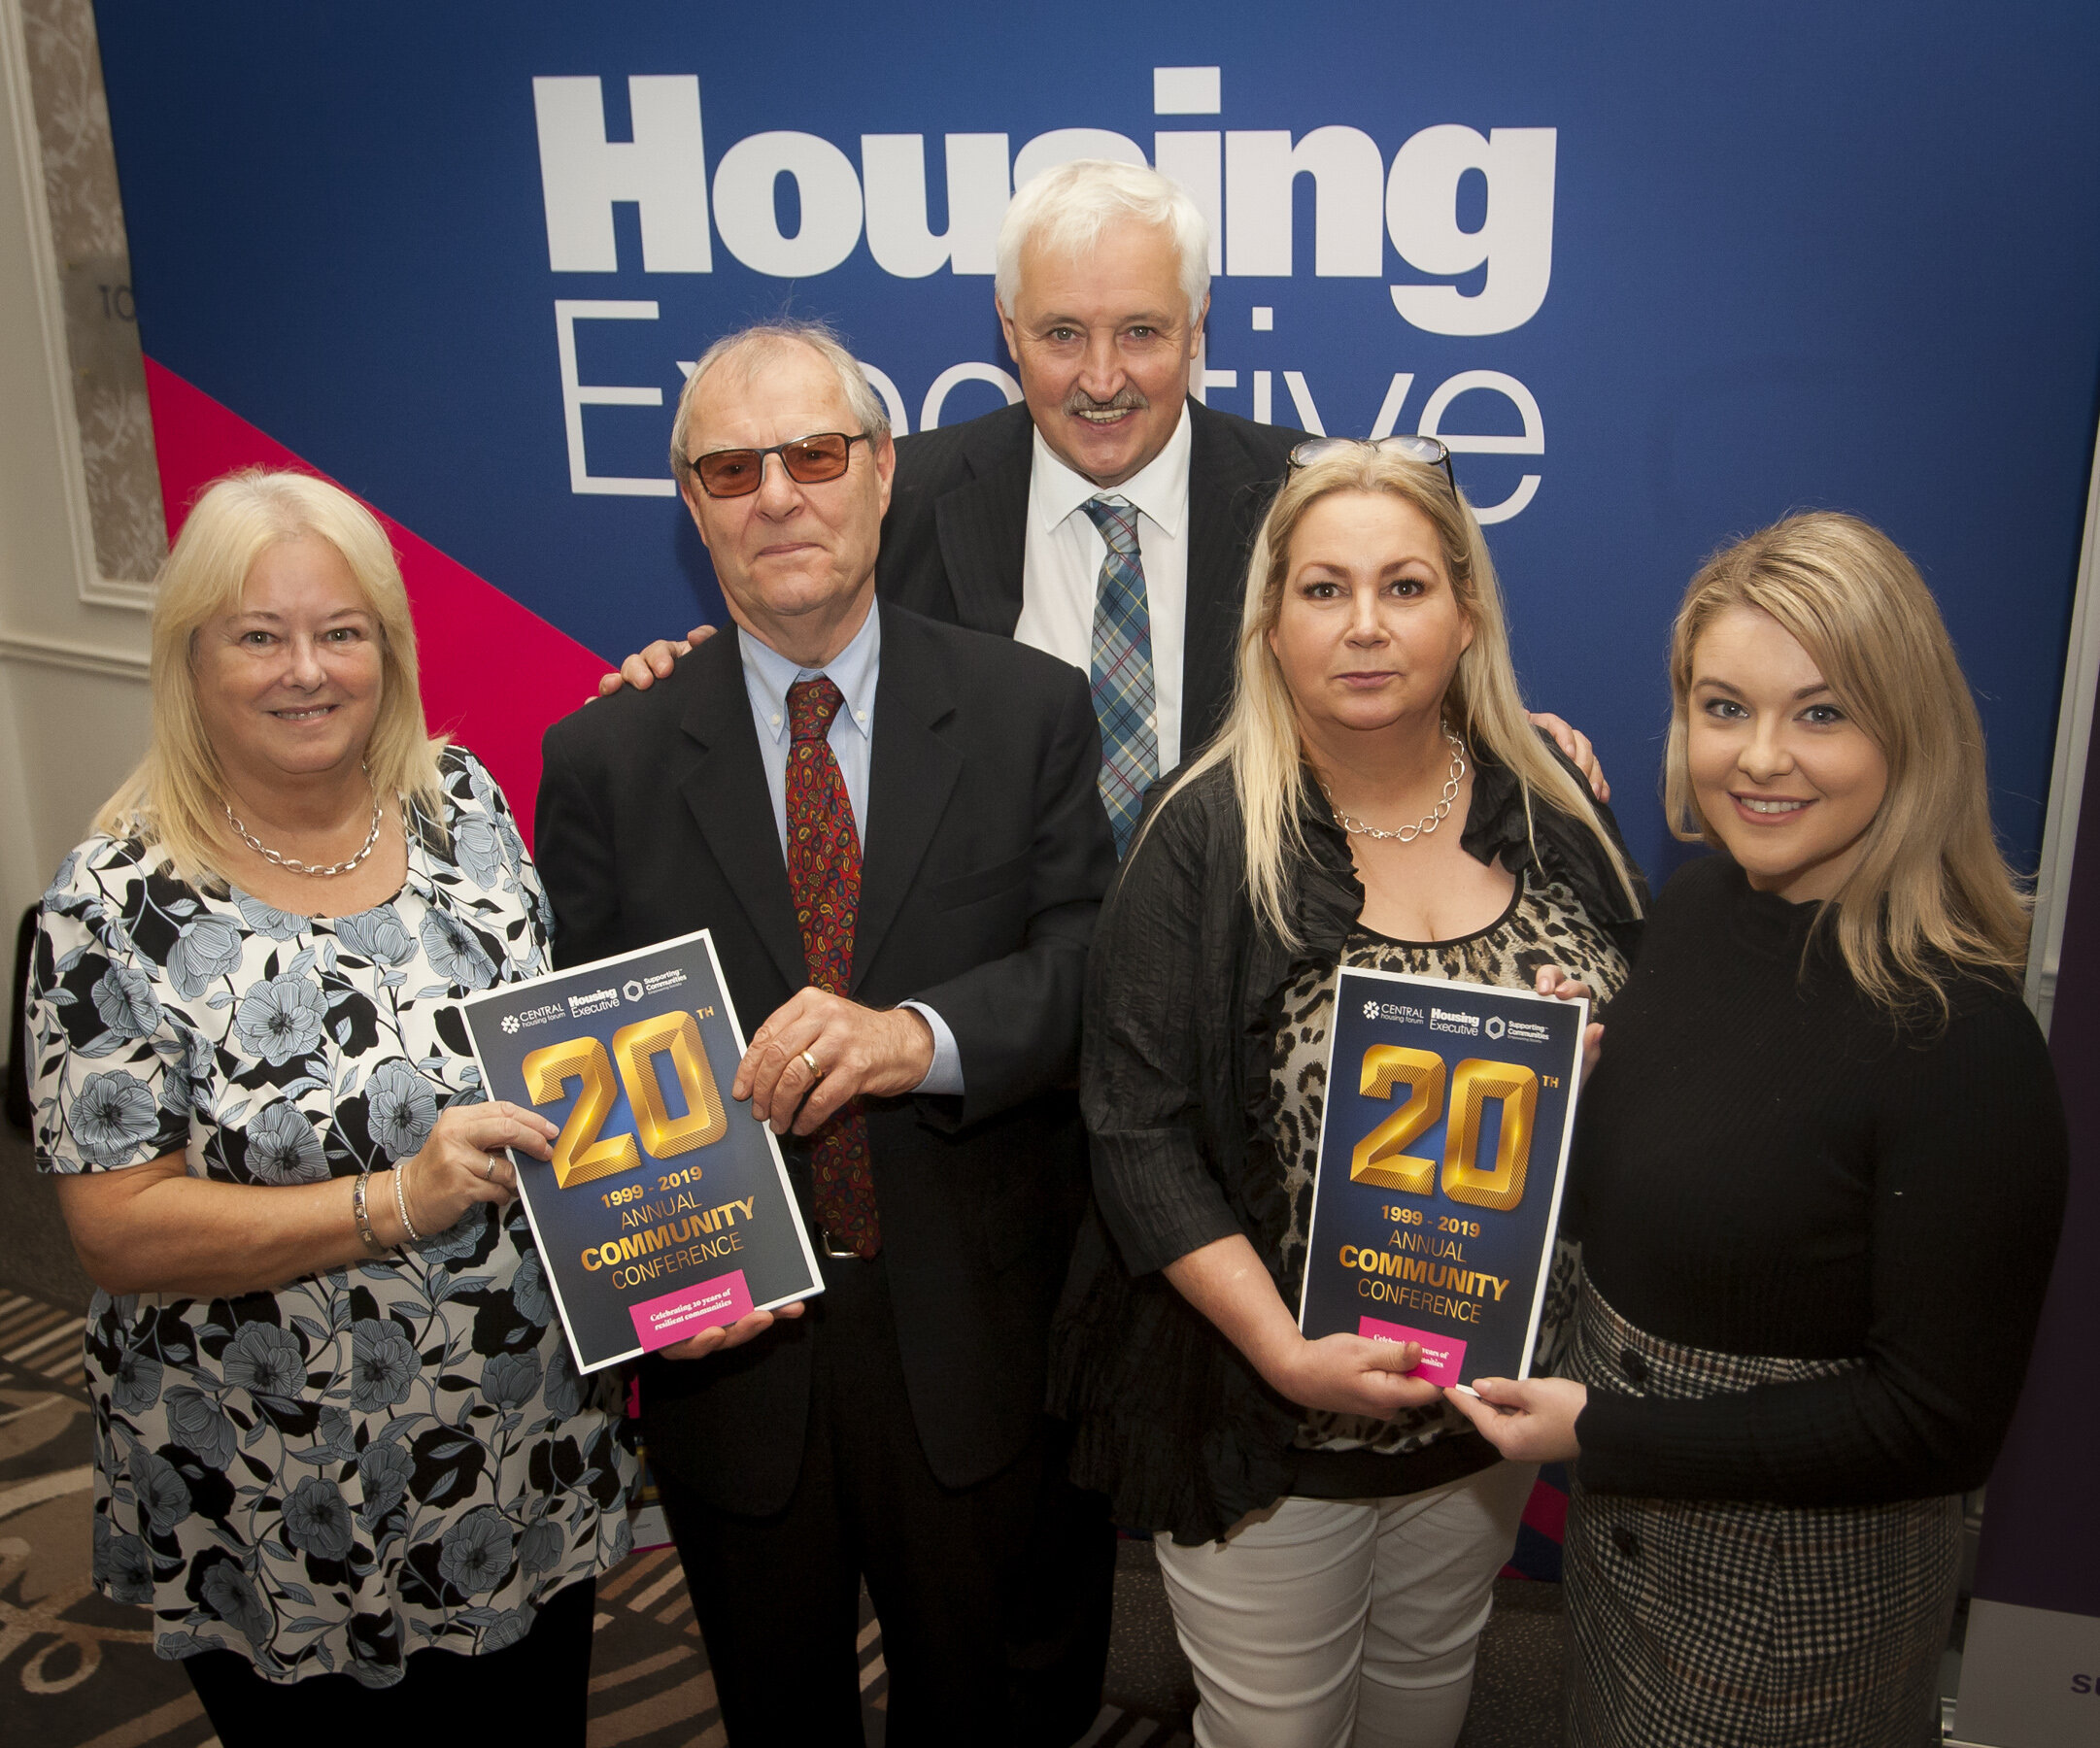 Linda Watson, Central Housing Forum Chair, Peter Roberts, Chair of the Housing Executive, John McMullan, Vice Chair of the Housing Executive, Patricia McQuillian, Central Housing Forum, and Annette Kelly, Keynote Speaker 'Little Penny Thoughts'